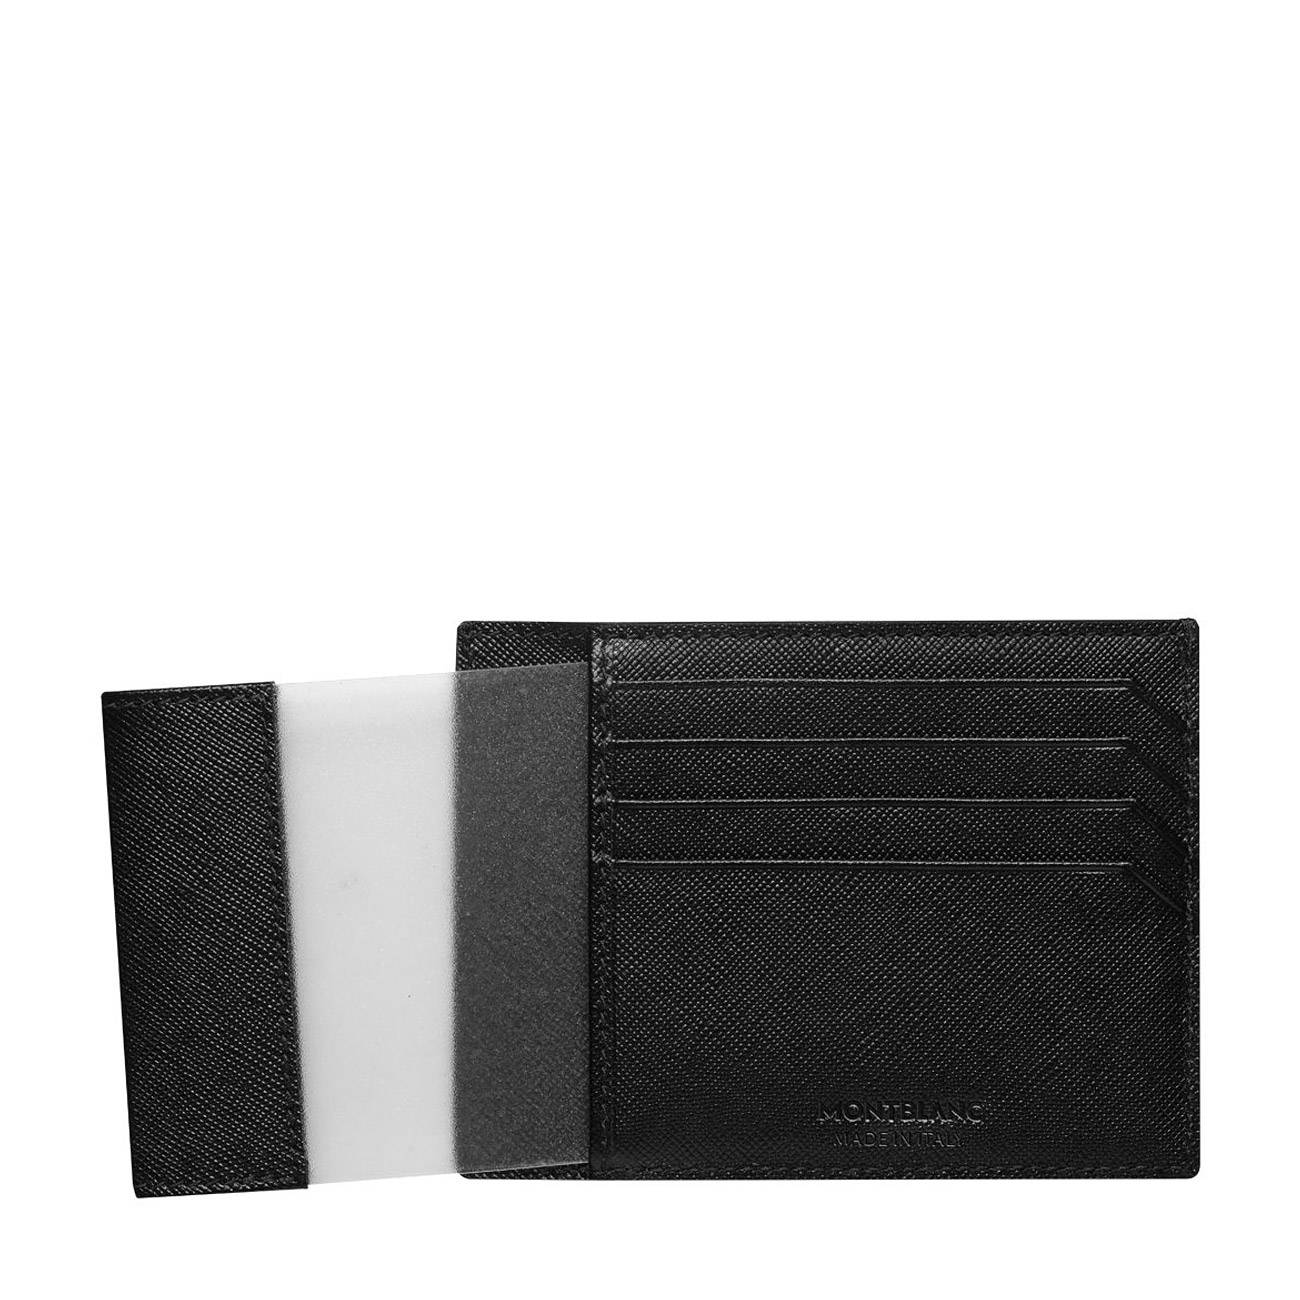 SARTORIAL POCKET 4CC WITH ID CARD HOLDER;